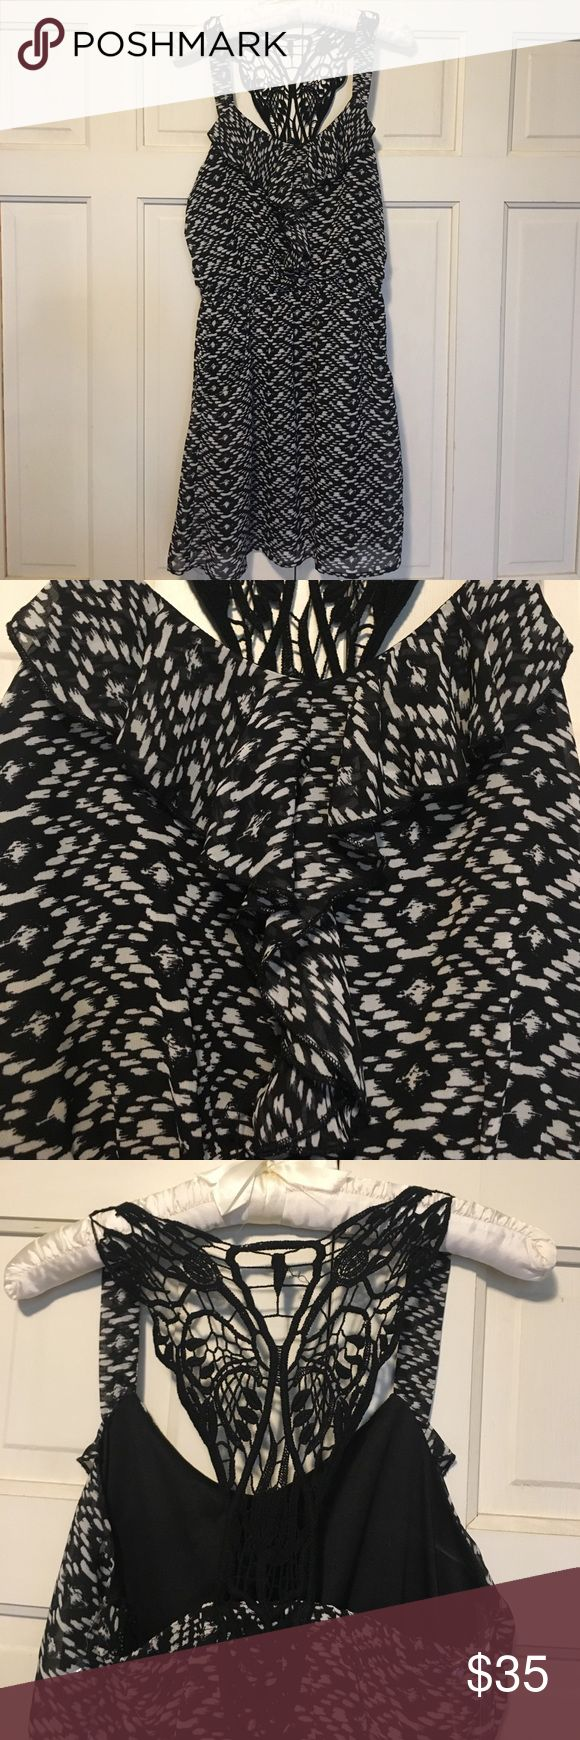 💜 Flirty spring dress Black and white summer dress with crochet t-back. Dress has sheer overlay with black lining underneath. Worn once for a summer wedding. Hand washed. No smoking home. Speechless Dresses